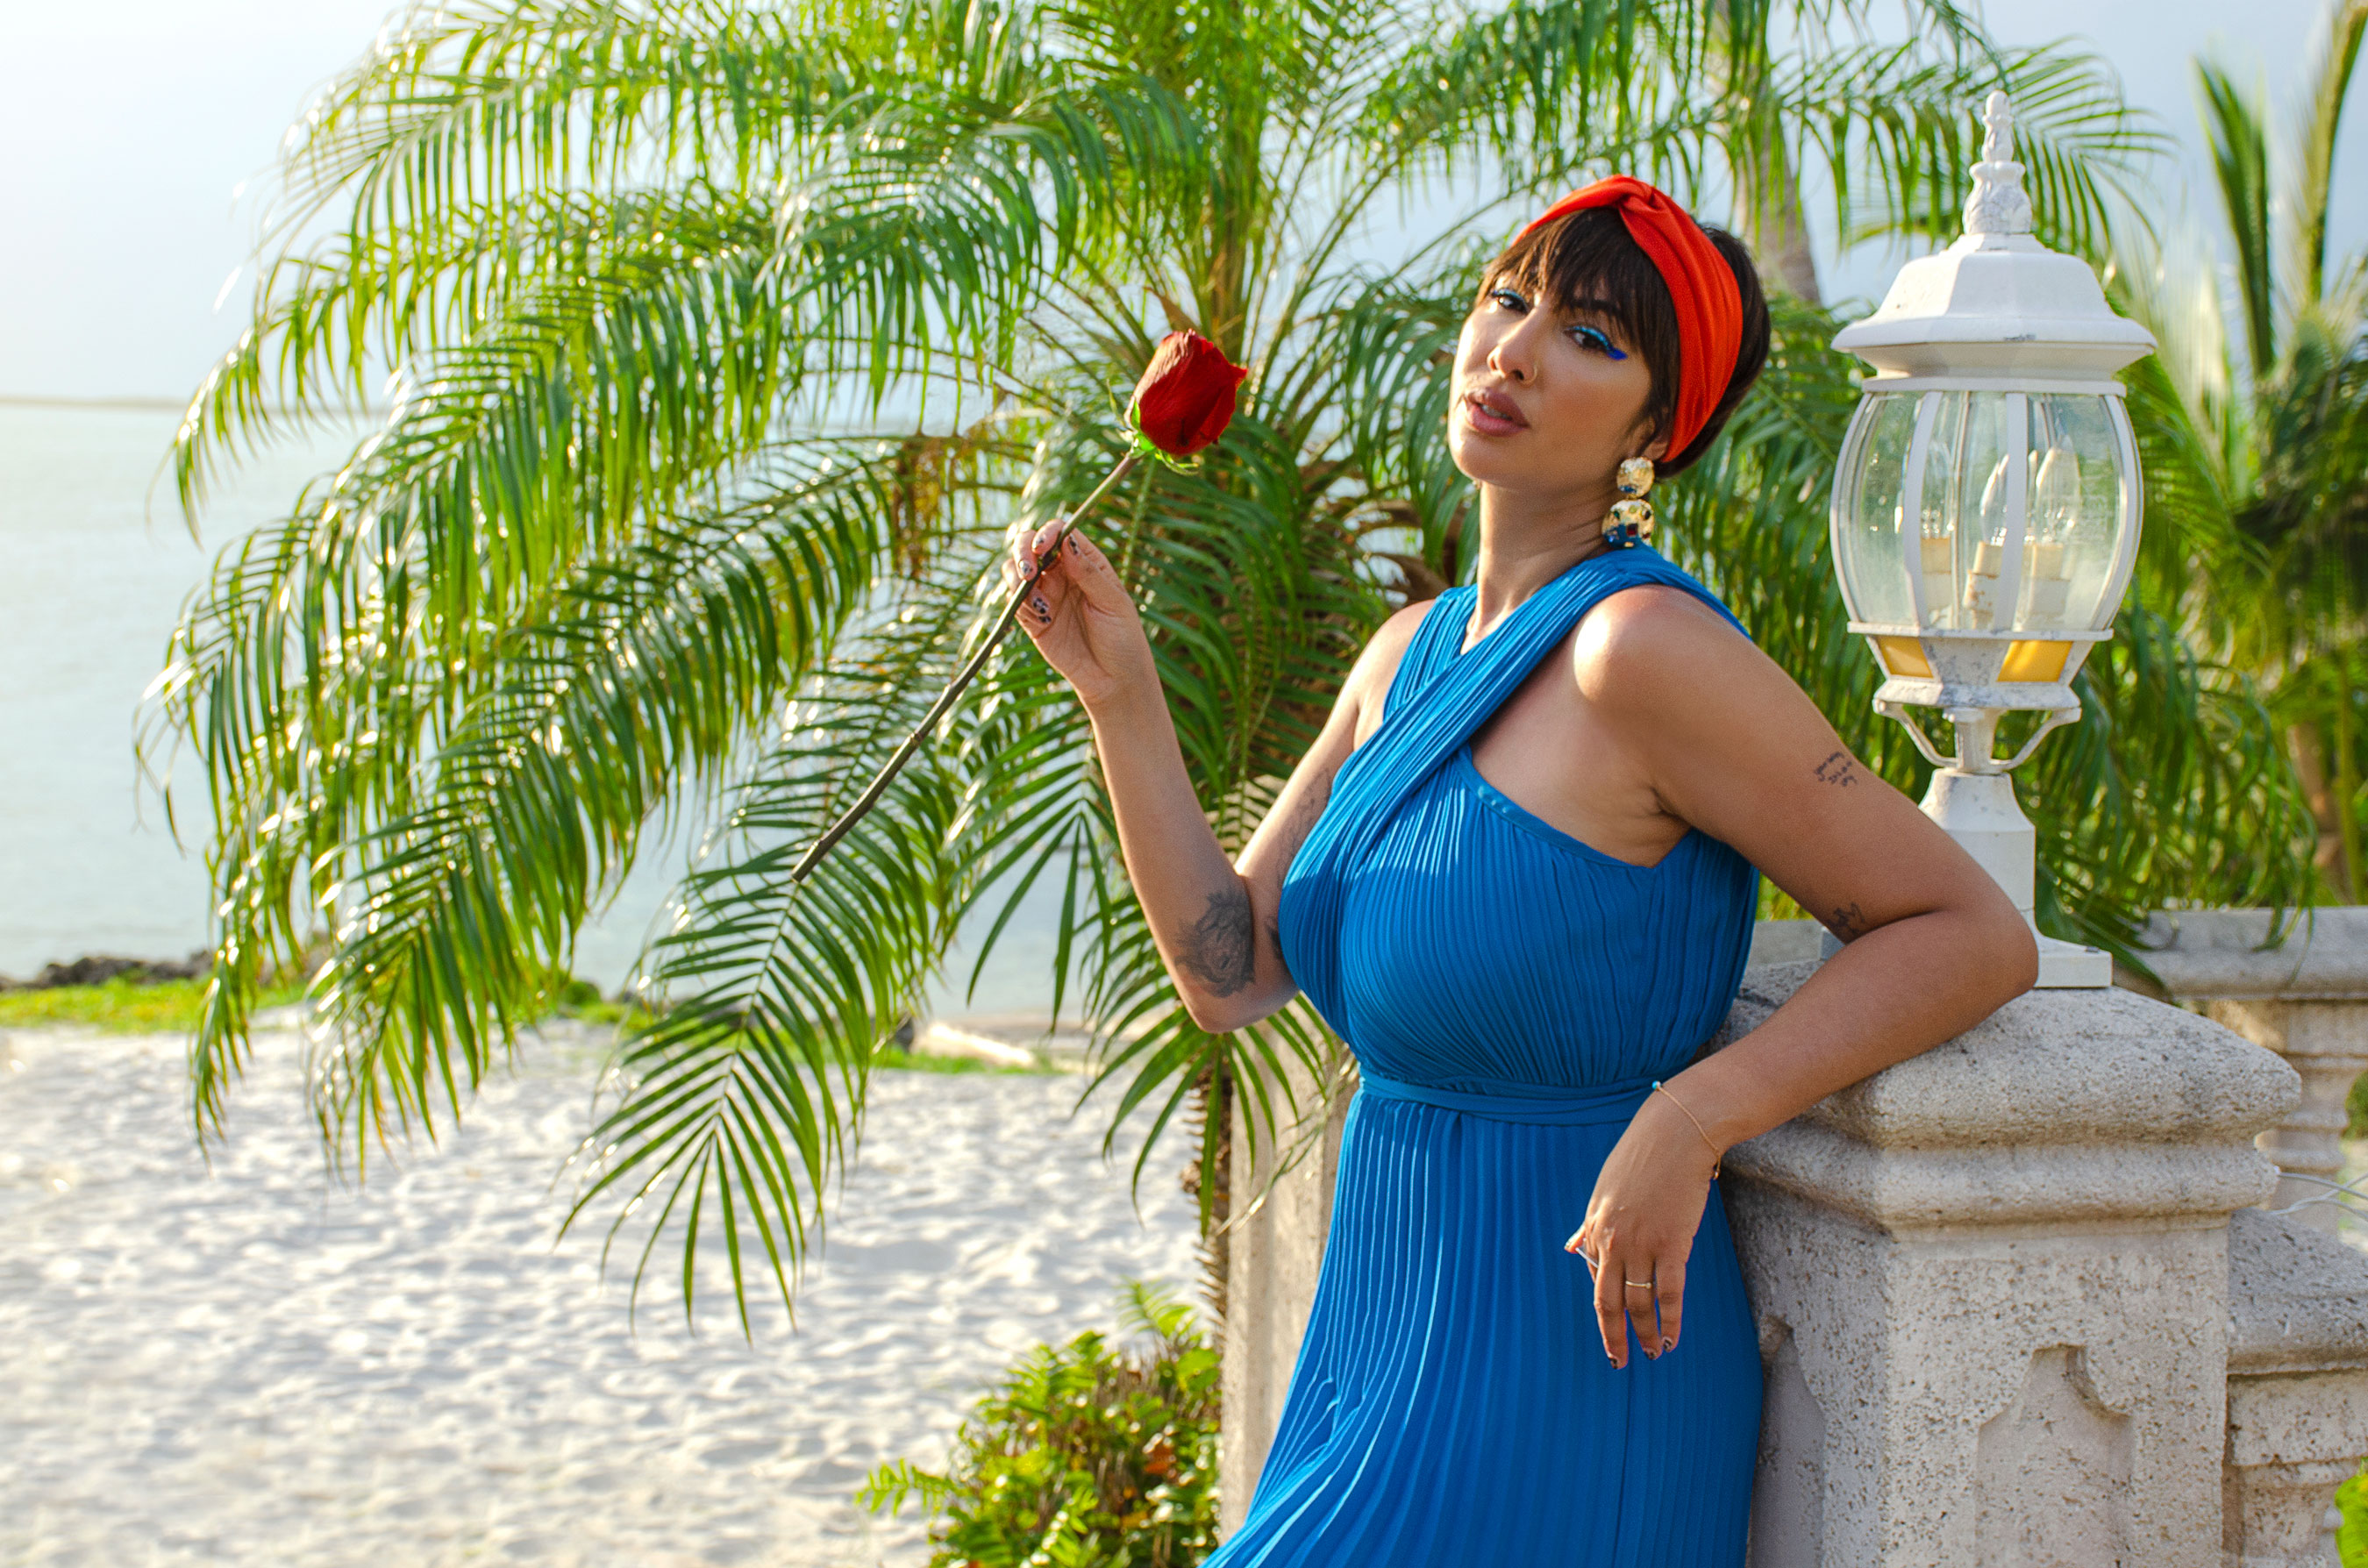 """""""Feelin' Myself Island,"""" a new campaign that parodies typical reality dating show tropes, features actress Jackie Cruz, who instead of competing for the affection and validation of an eligible bachelor, professes her inner confidence through fun-lighthearted takes showing her flirting with herself as the sole """"contestant"""" on """"Feelin' Myself Island."""""""